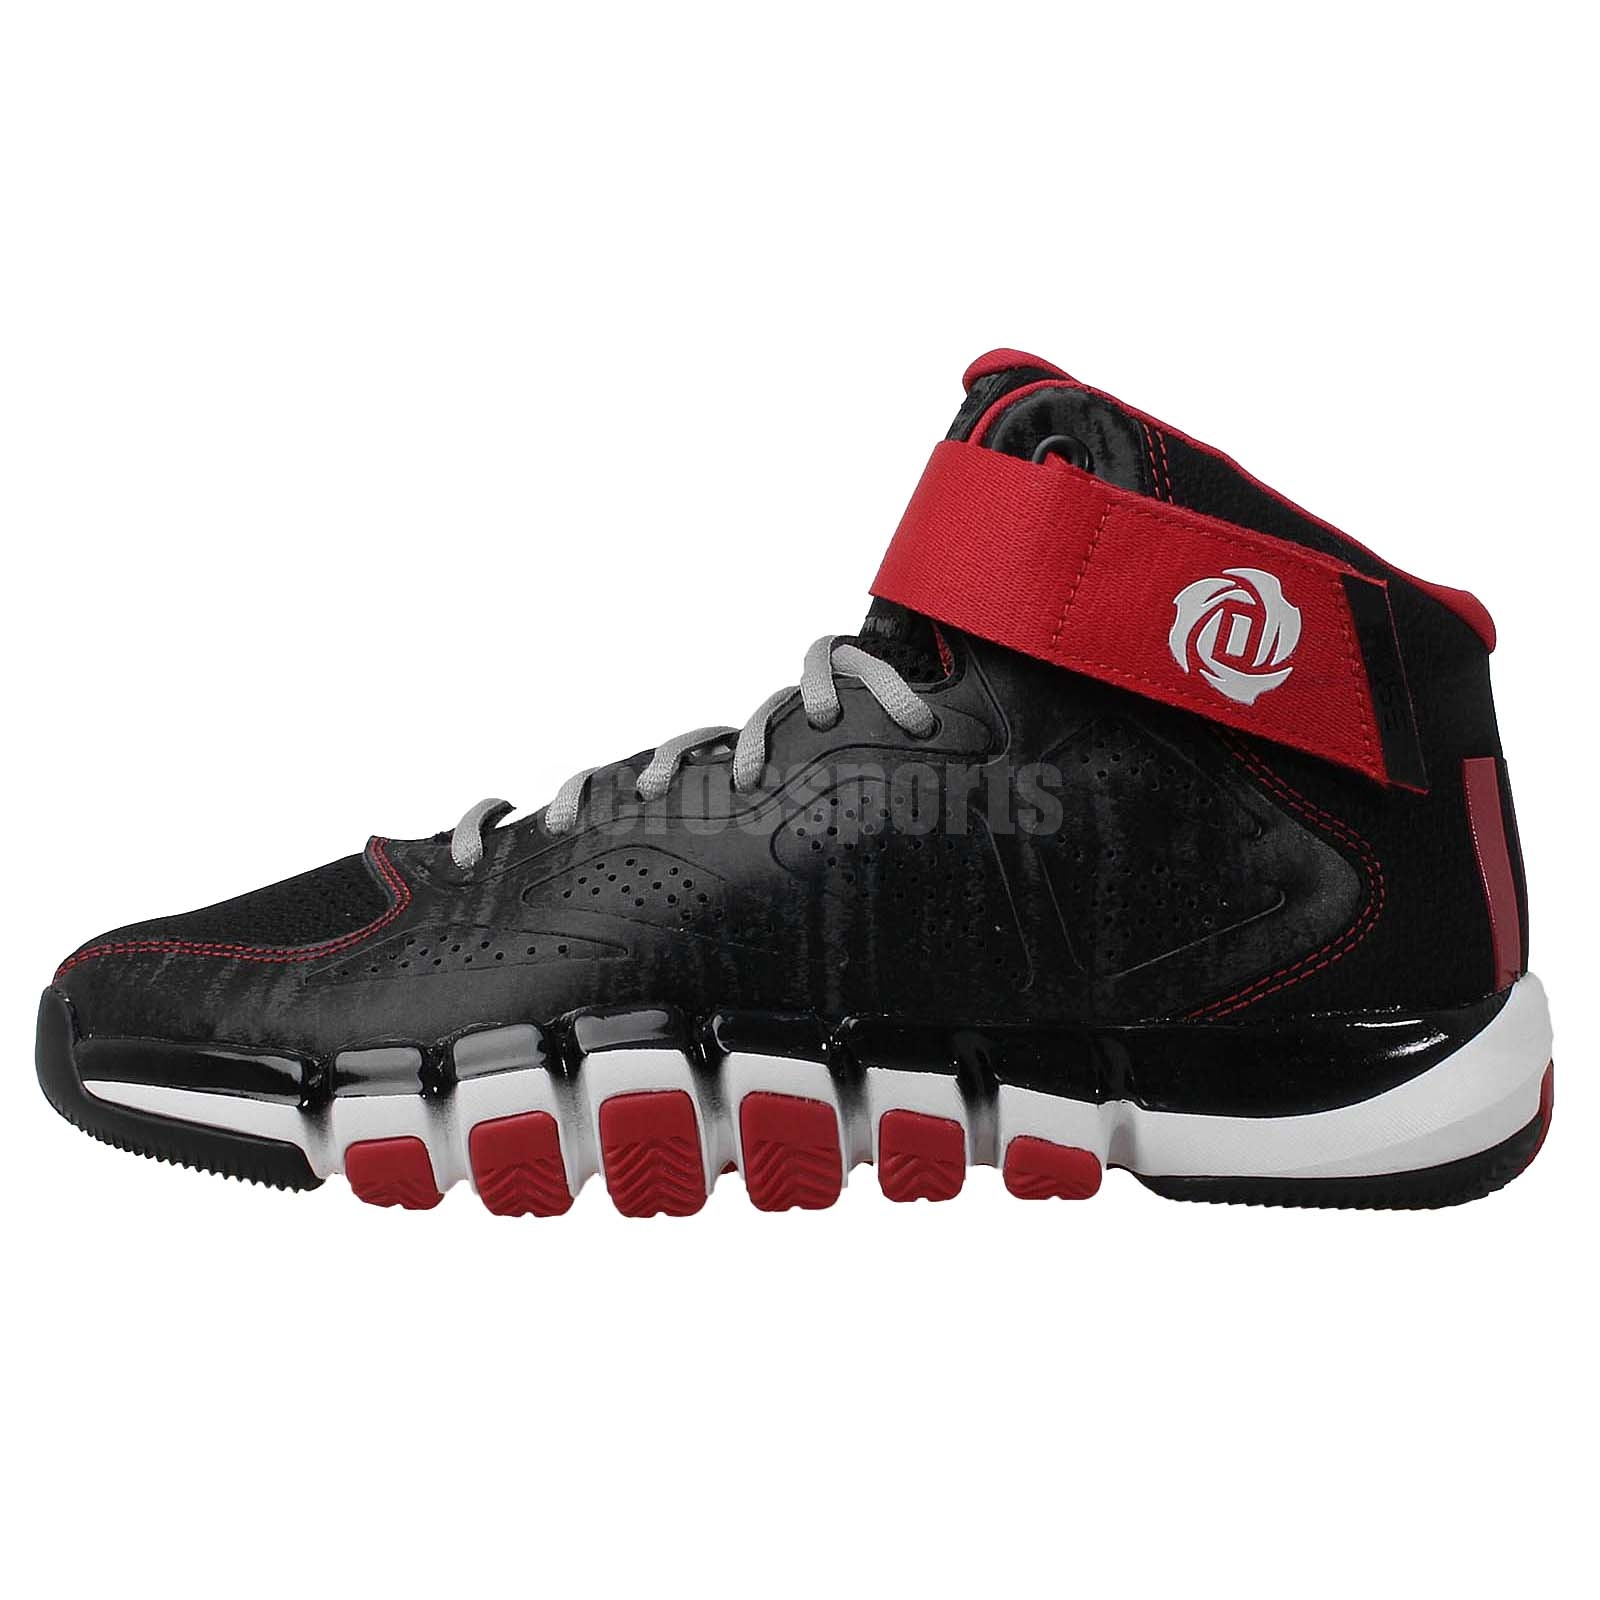 senonsdownload-gv.cf provides d rose red shoes items from China top selected Basketball Shoes, Sports Shoes, Shoes & Accessories suppliers at wholesale prices with worldwide delivery. You can find red shoe, Basketball d rose red shoes free shipping, d rose red shoes and view 79 d rose red shoes reviews to help you choose.